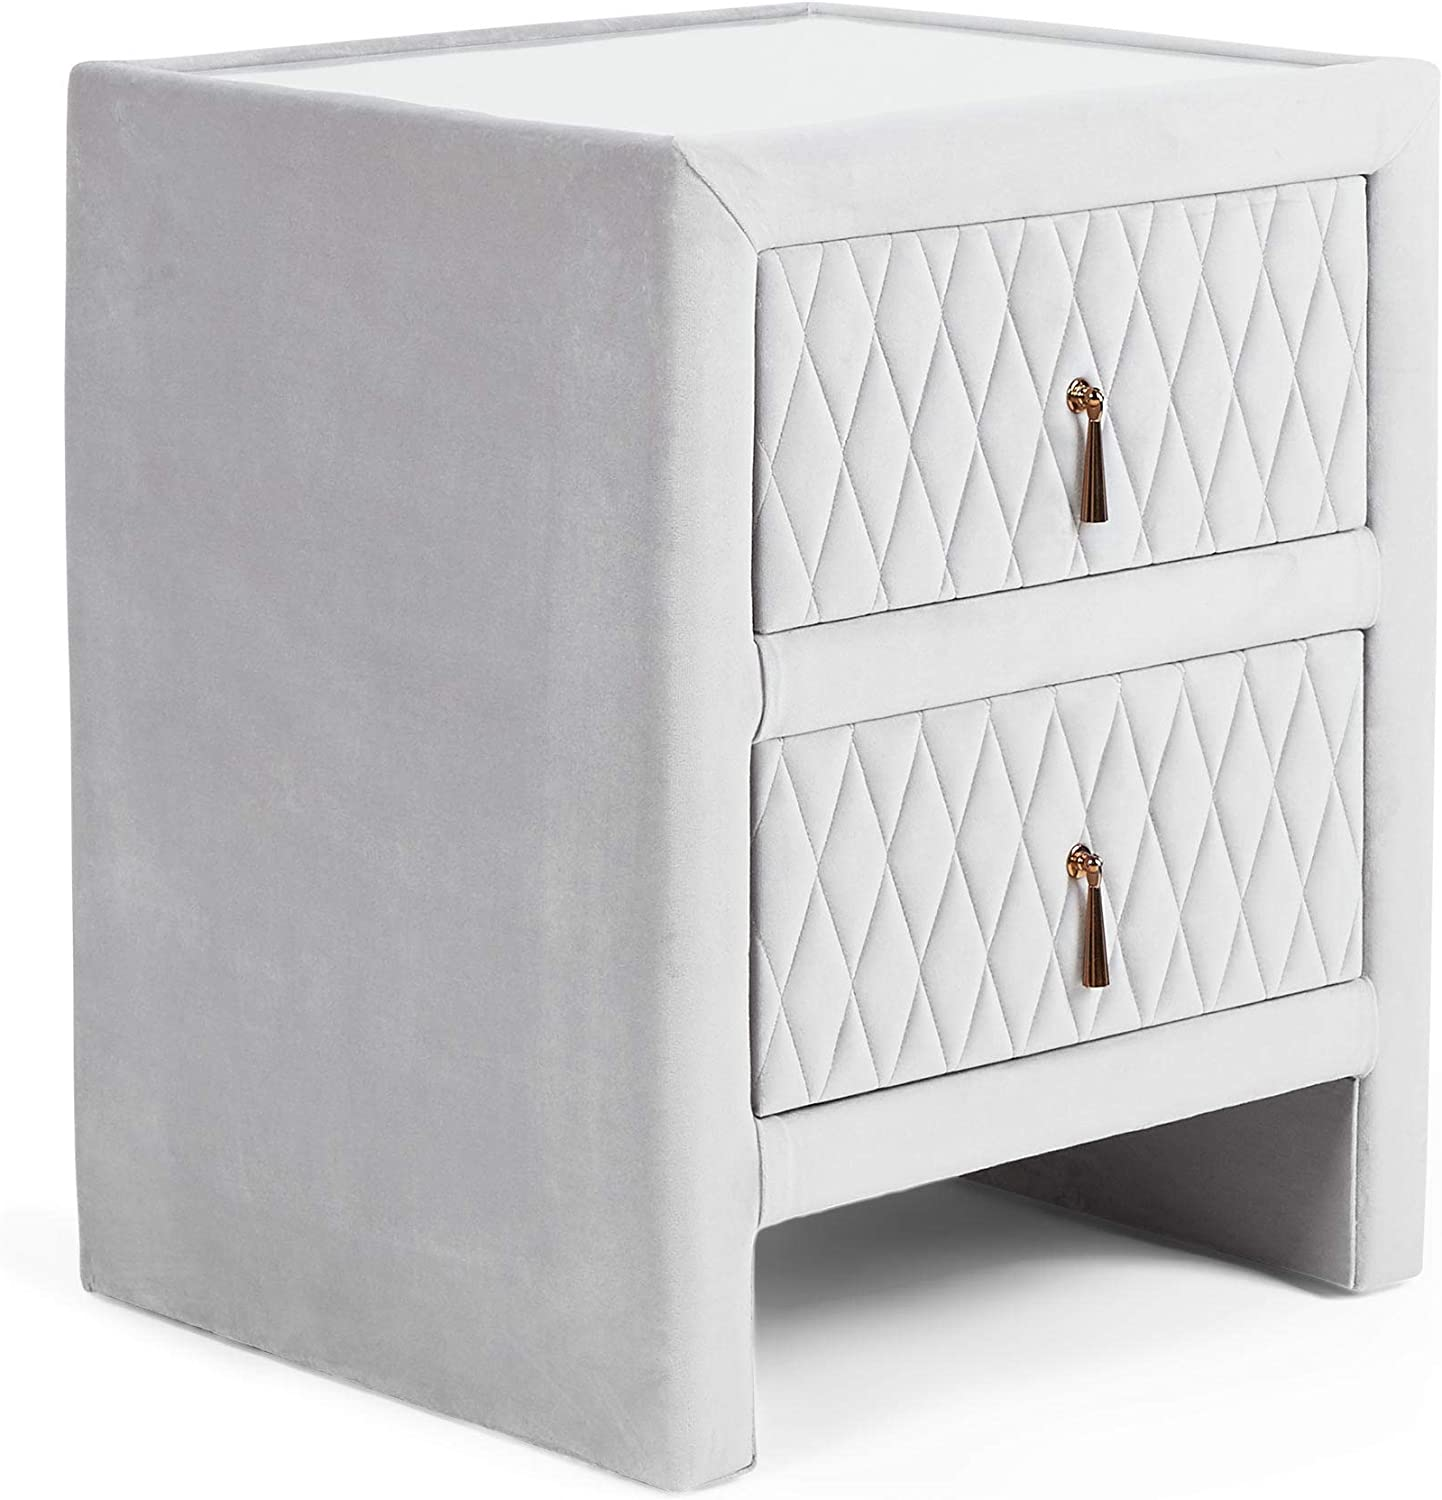 Beautify Grey Bedside Table Unit - Bedside Cabinet Night Stand